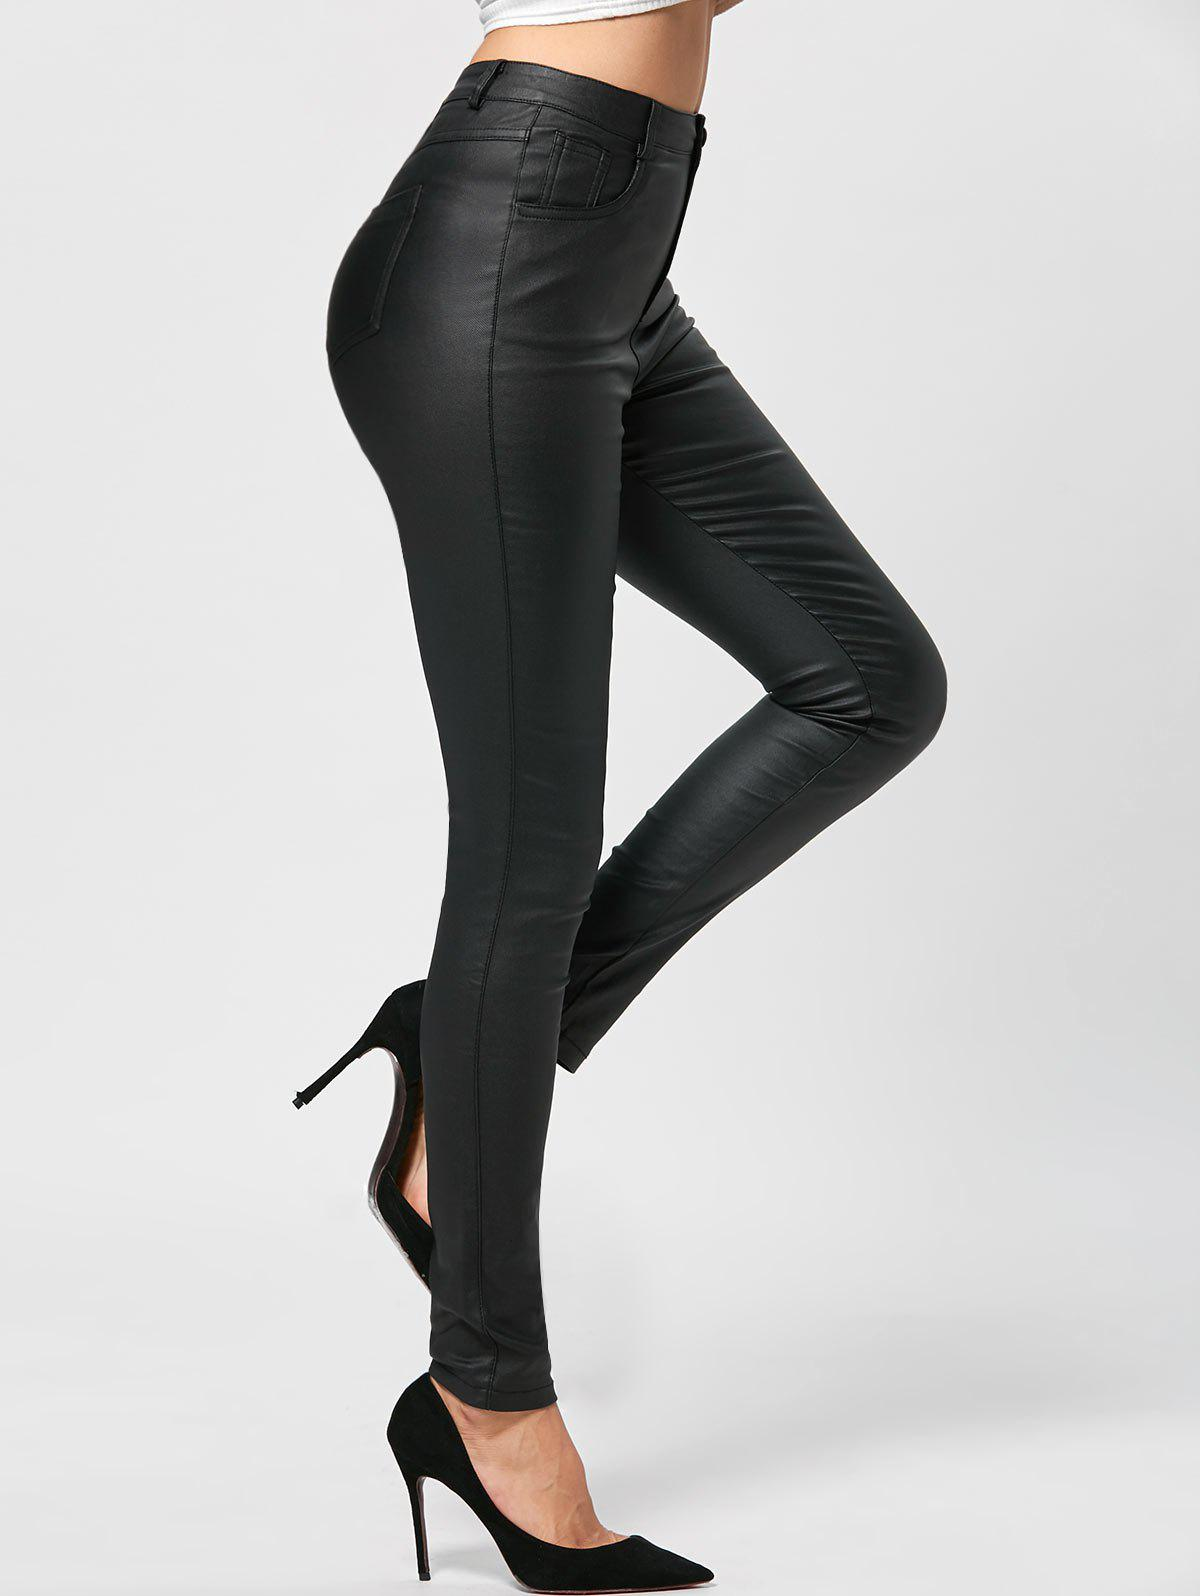 Five Pockets PU Leather Tight PantsWOMEN<br><br>Size: XL; Color: BLACK; Style: Fashion; Length: Normal; Material: Polyester,Spandex; Fit Type: Skinny; Waist Type: Mid; Closure Type: Zipper Fly; Pattern Type: Solid; Pant Style: Pencil Pants; Weight: 0.3700kg; Package Contents: 1 x Pants;